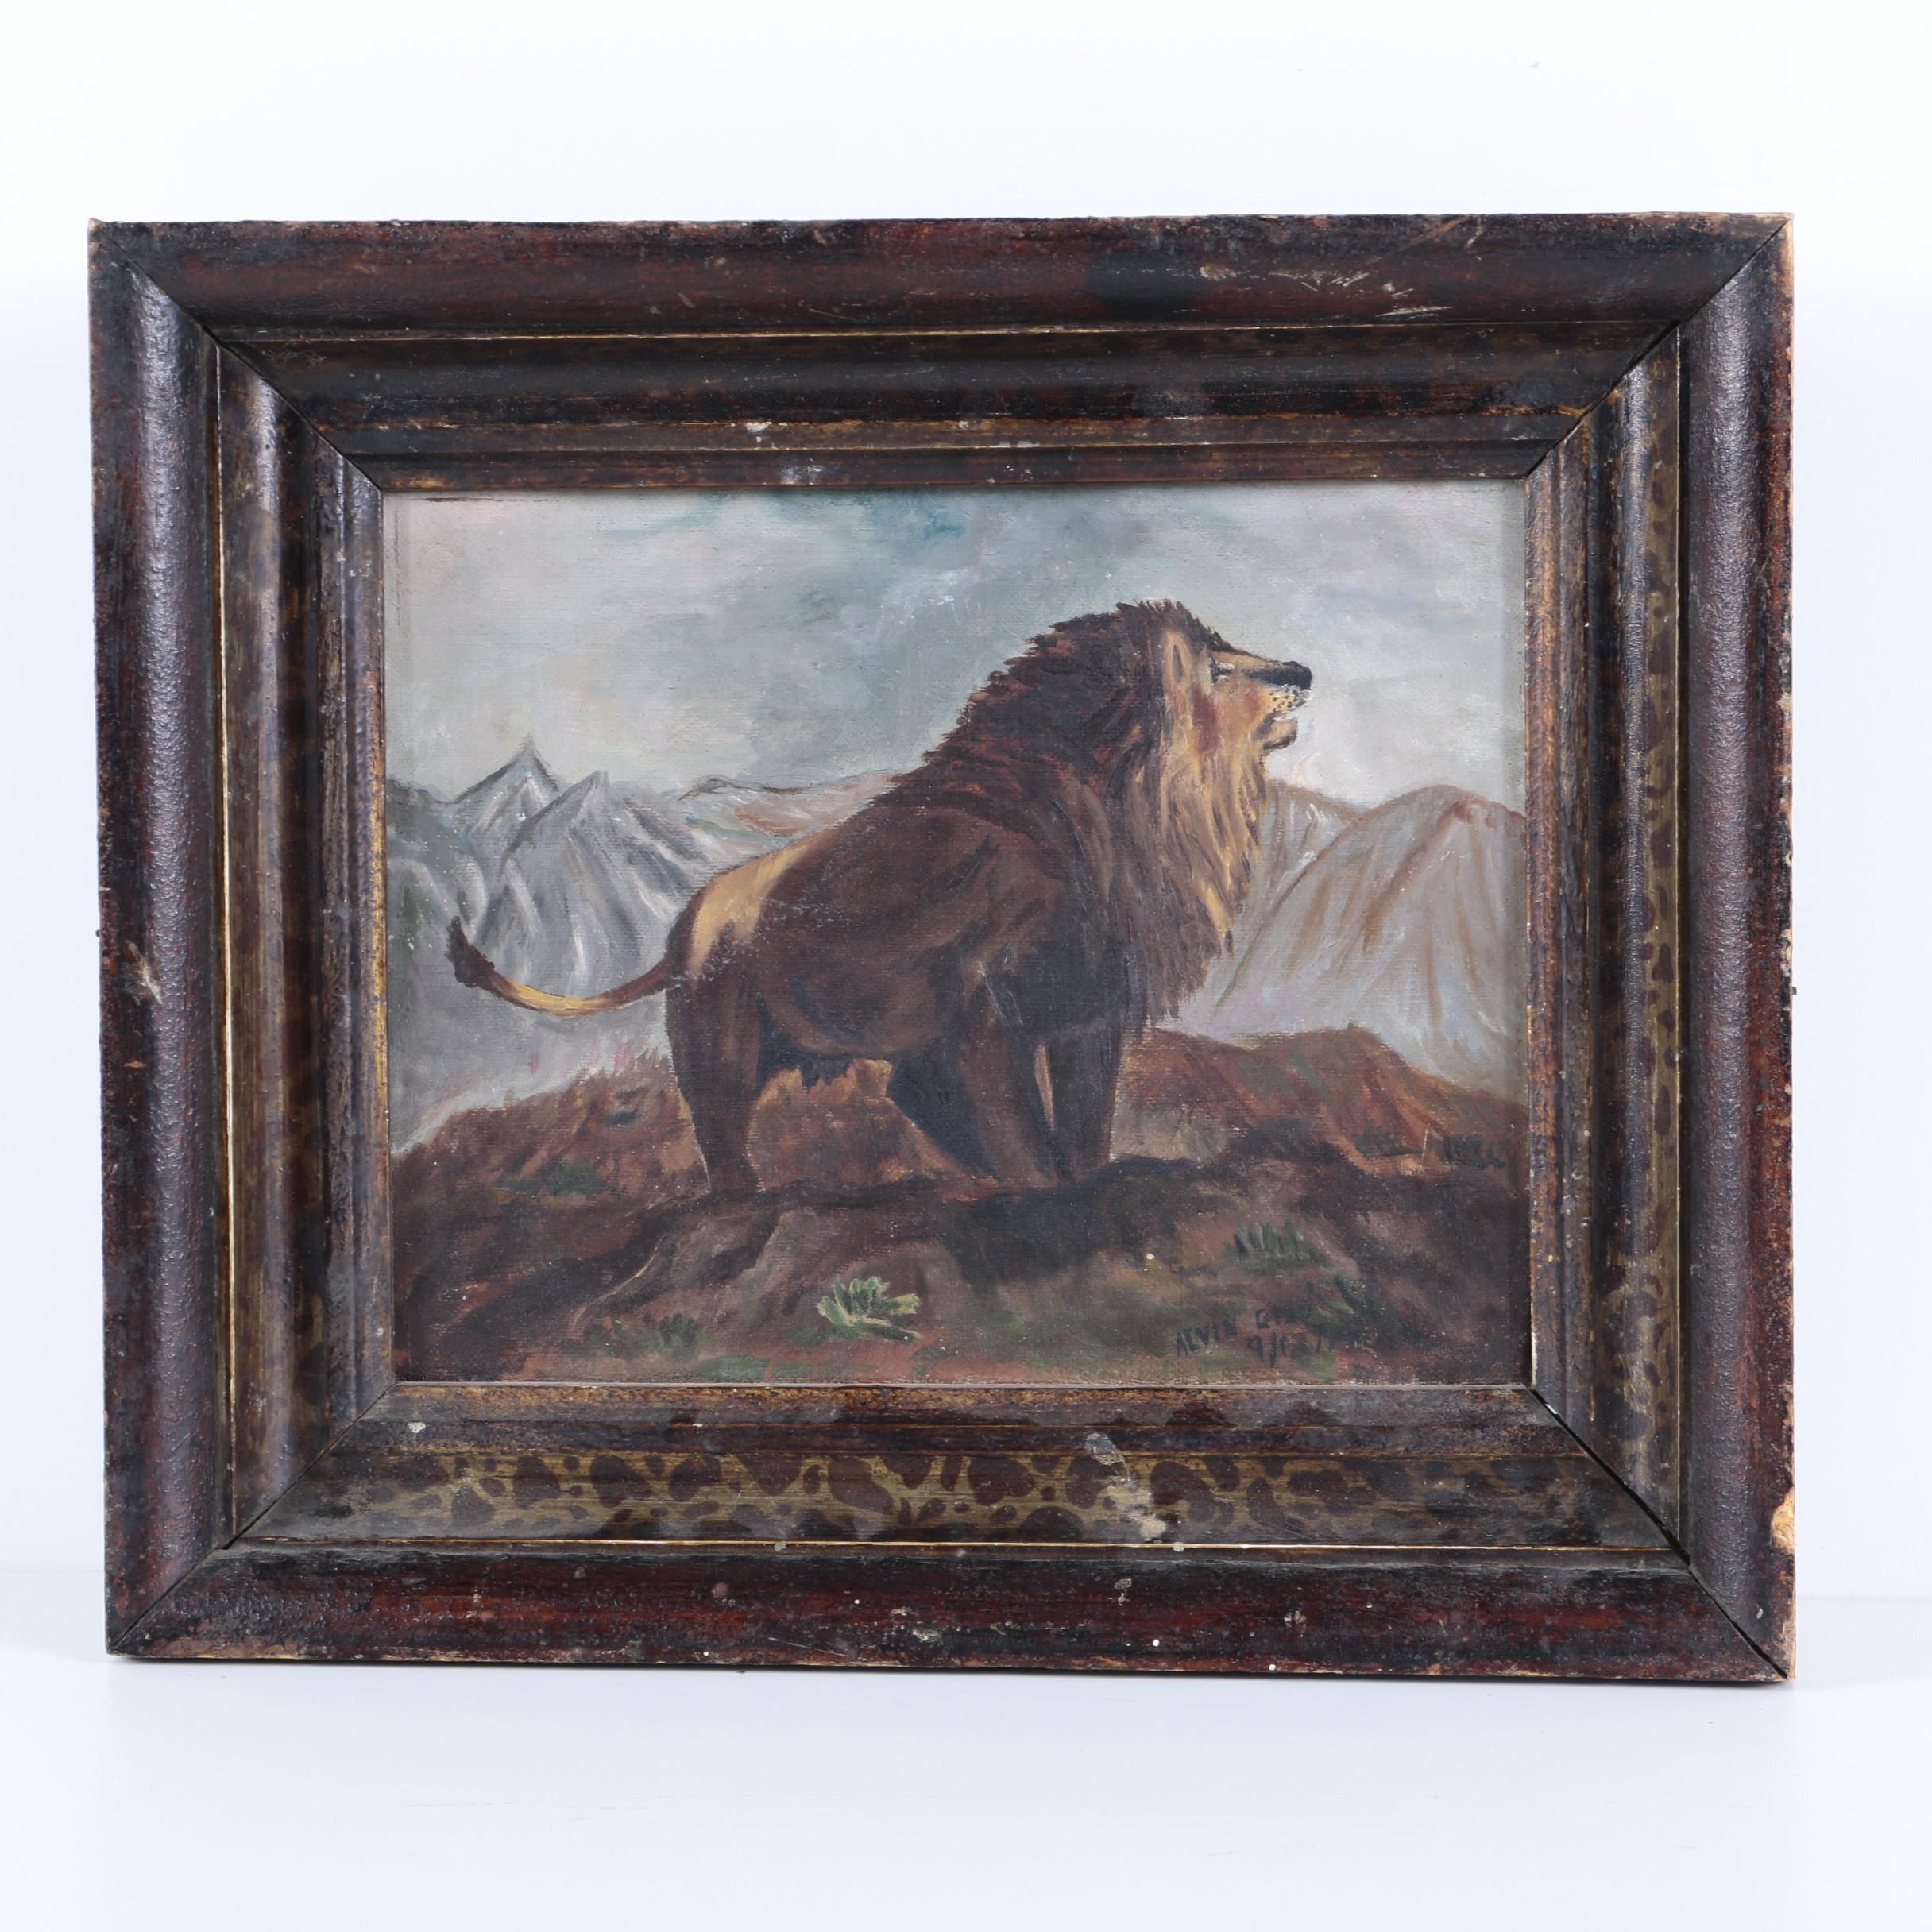 Alvin Gies Oil Painting on Canvas of a Lion